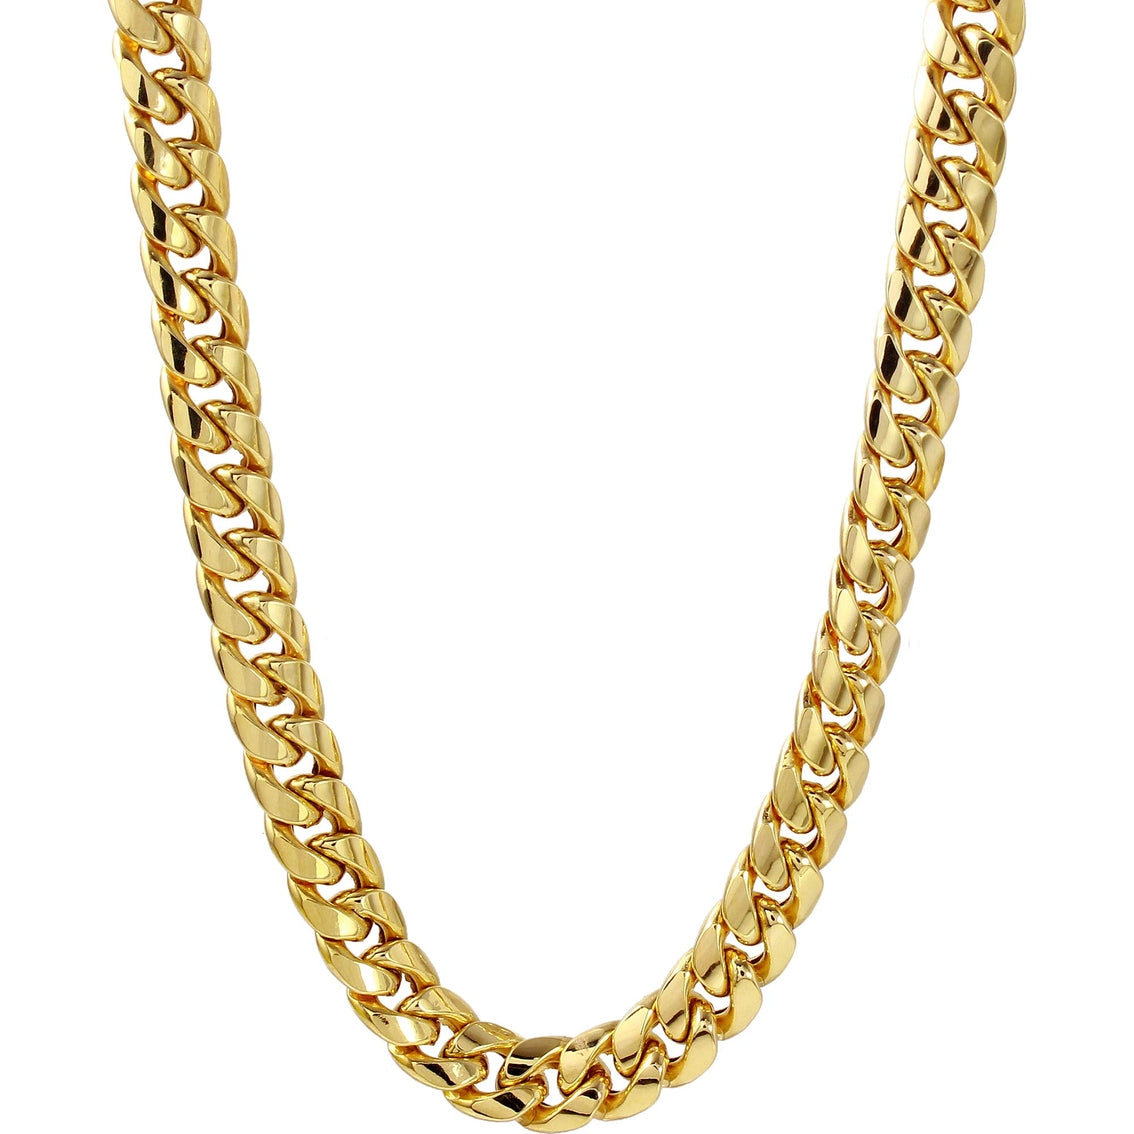 10K Yellow Gold 12Mm Solid Miami Cuban Link Chain 24